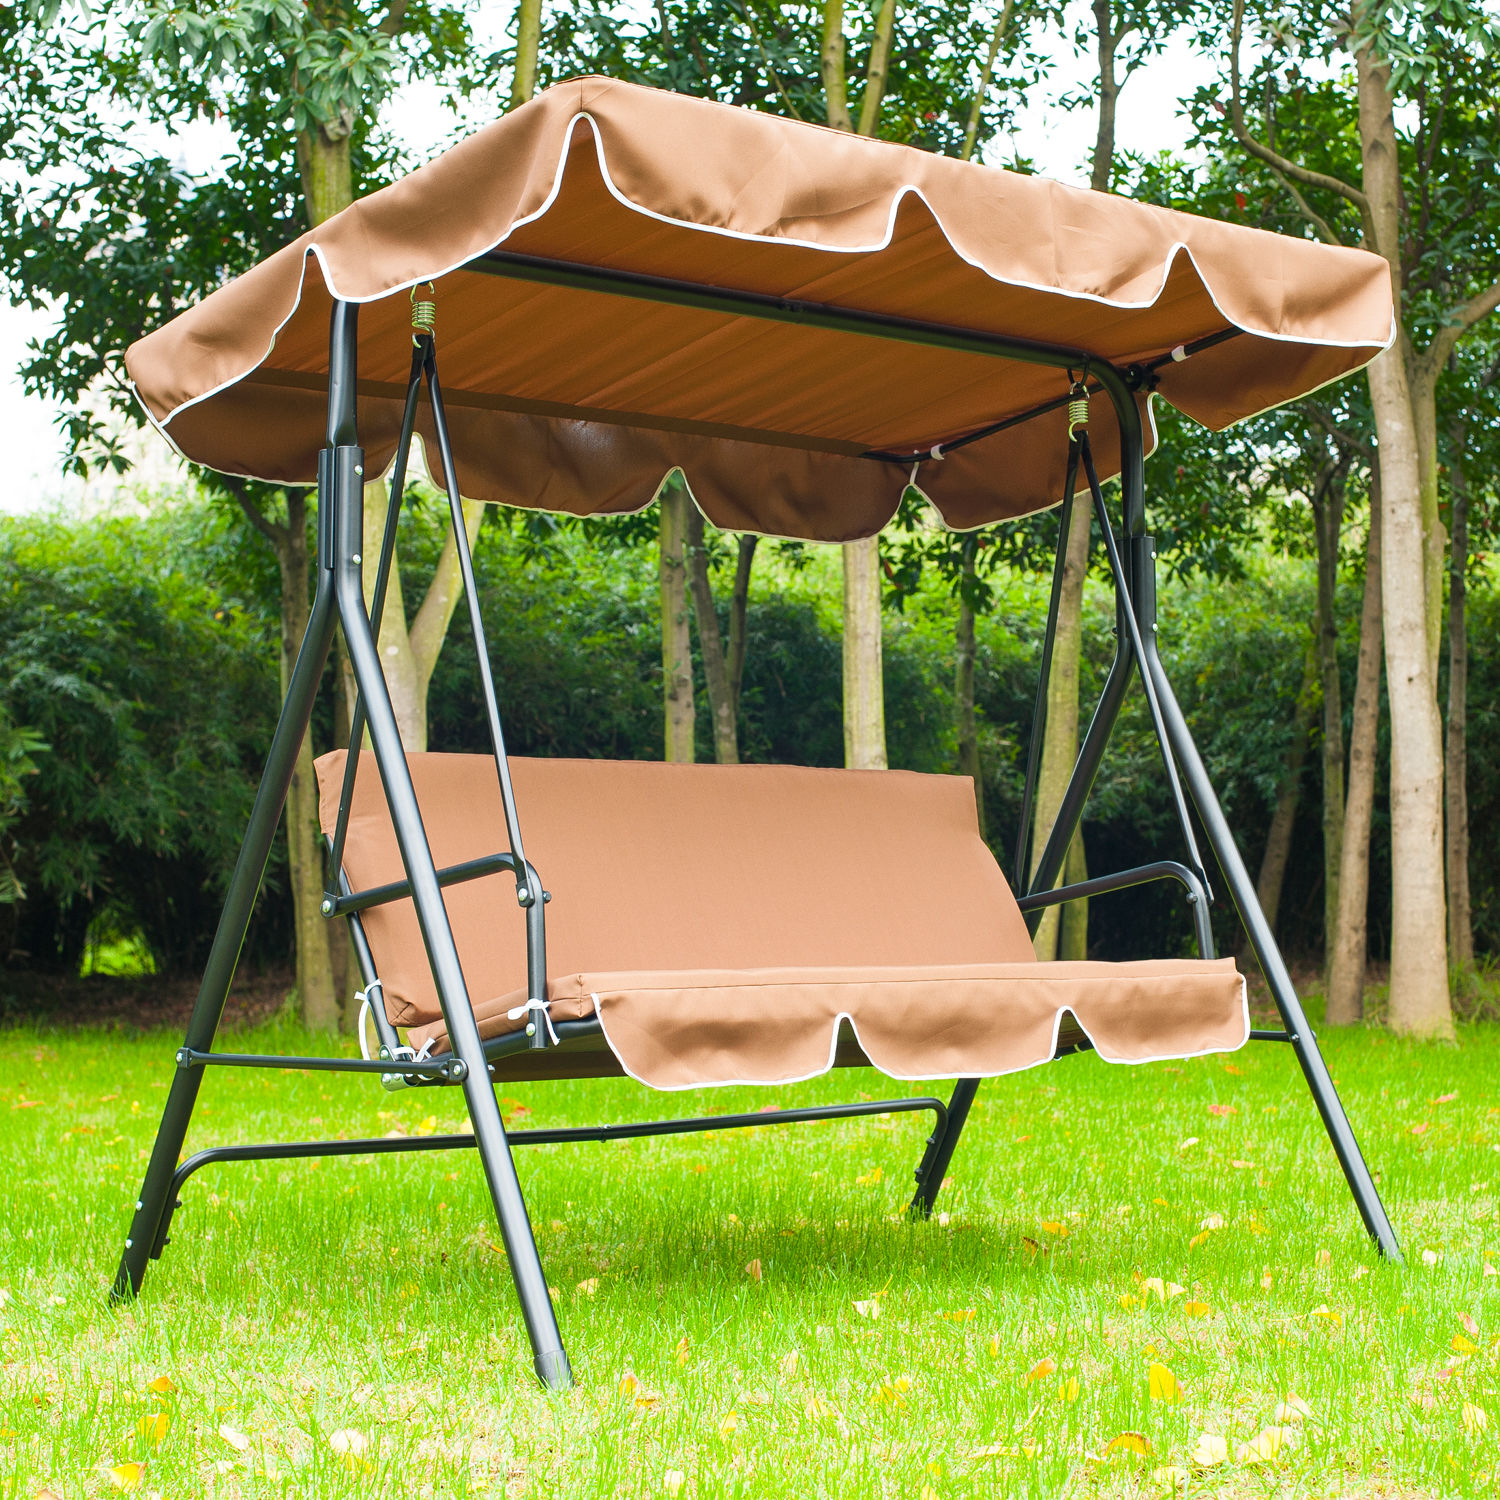 metal 3 seater outdoor swing chair lounger with frame and canopy garden hammock ebay. Black Bedroom Furniture Sets. Home Design Ideas